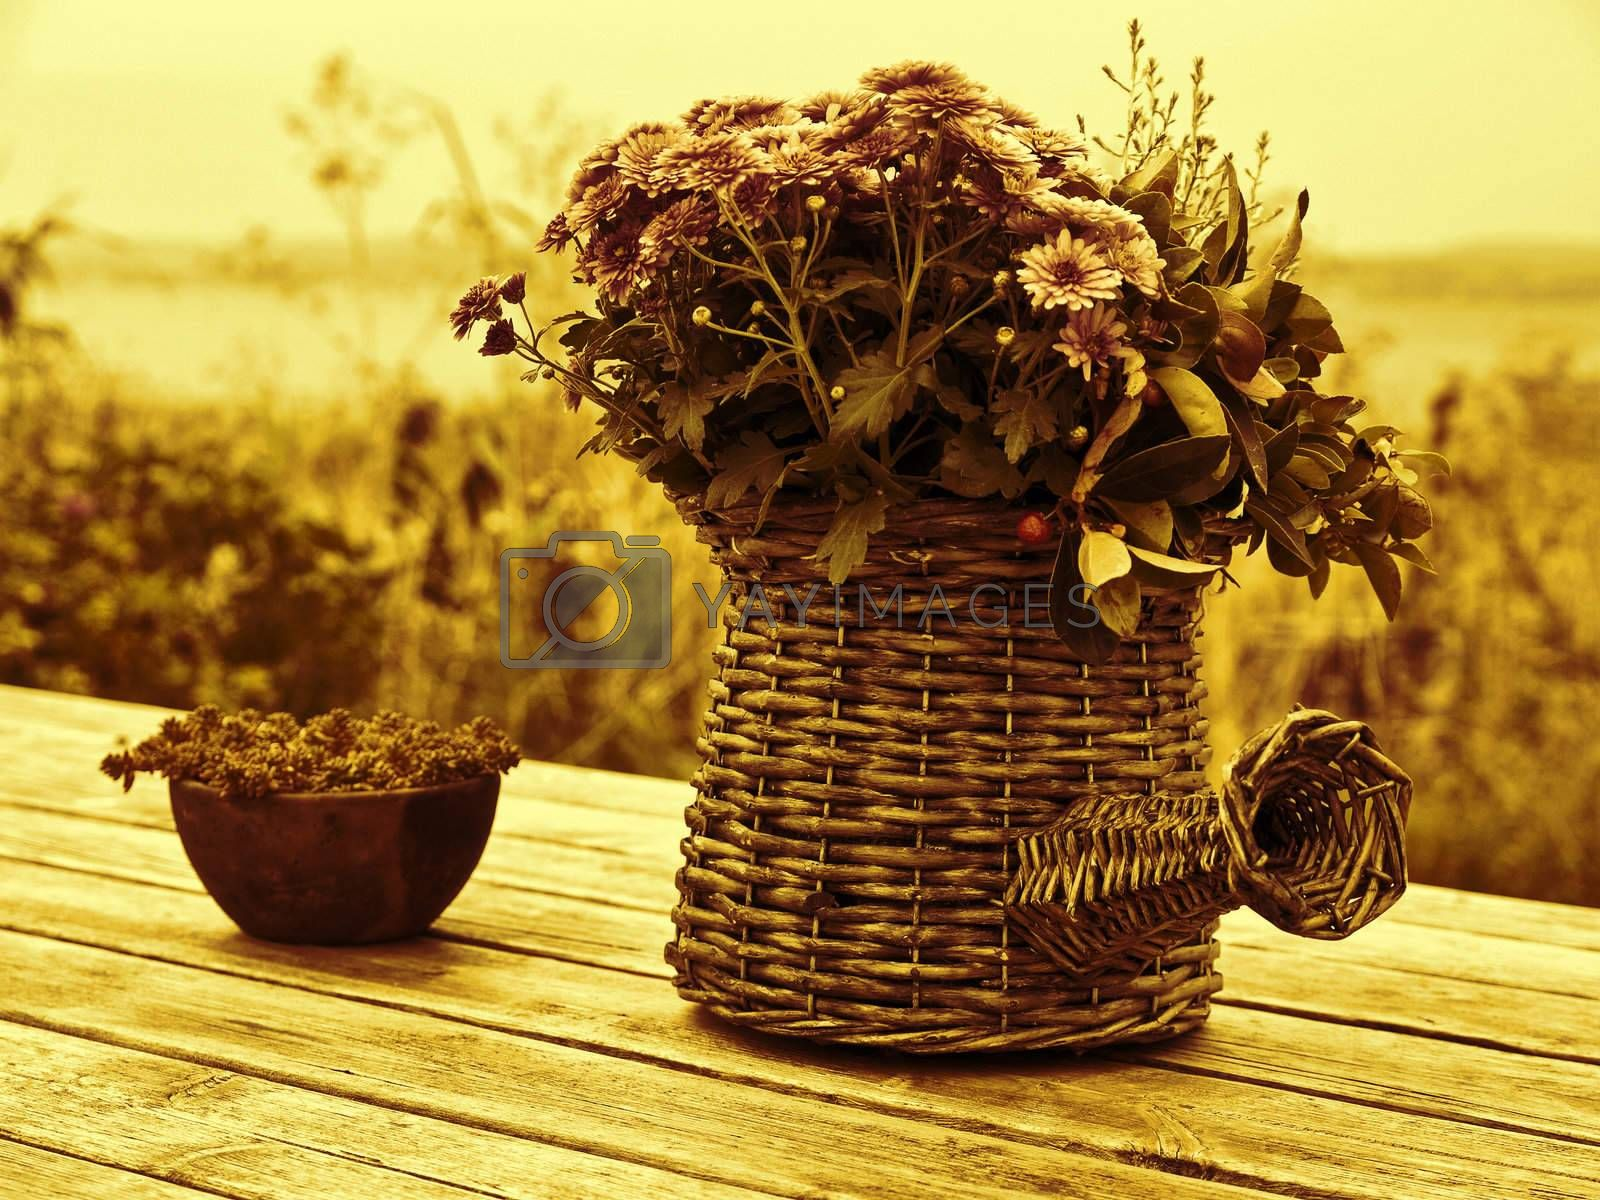 Beautiful still life basket of flowers on a wooden table digital art manipulated